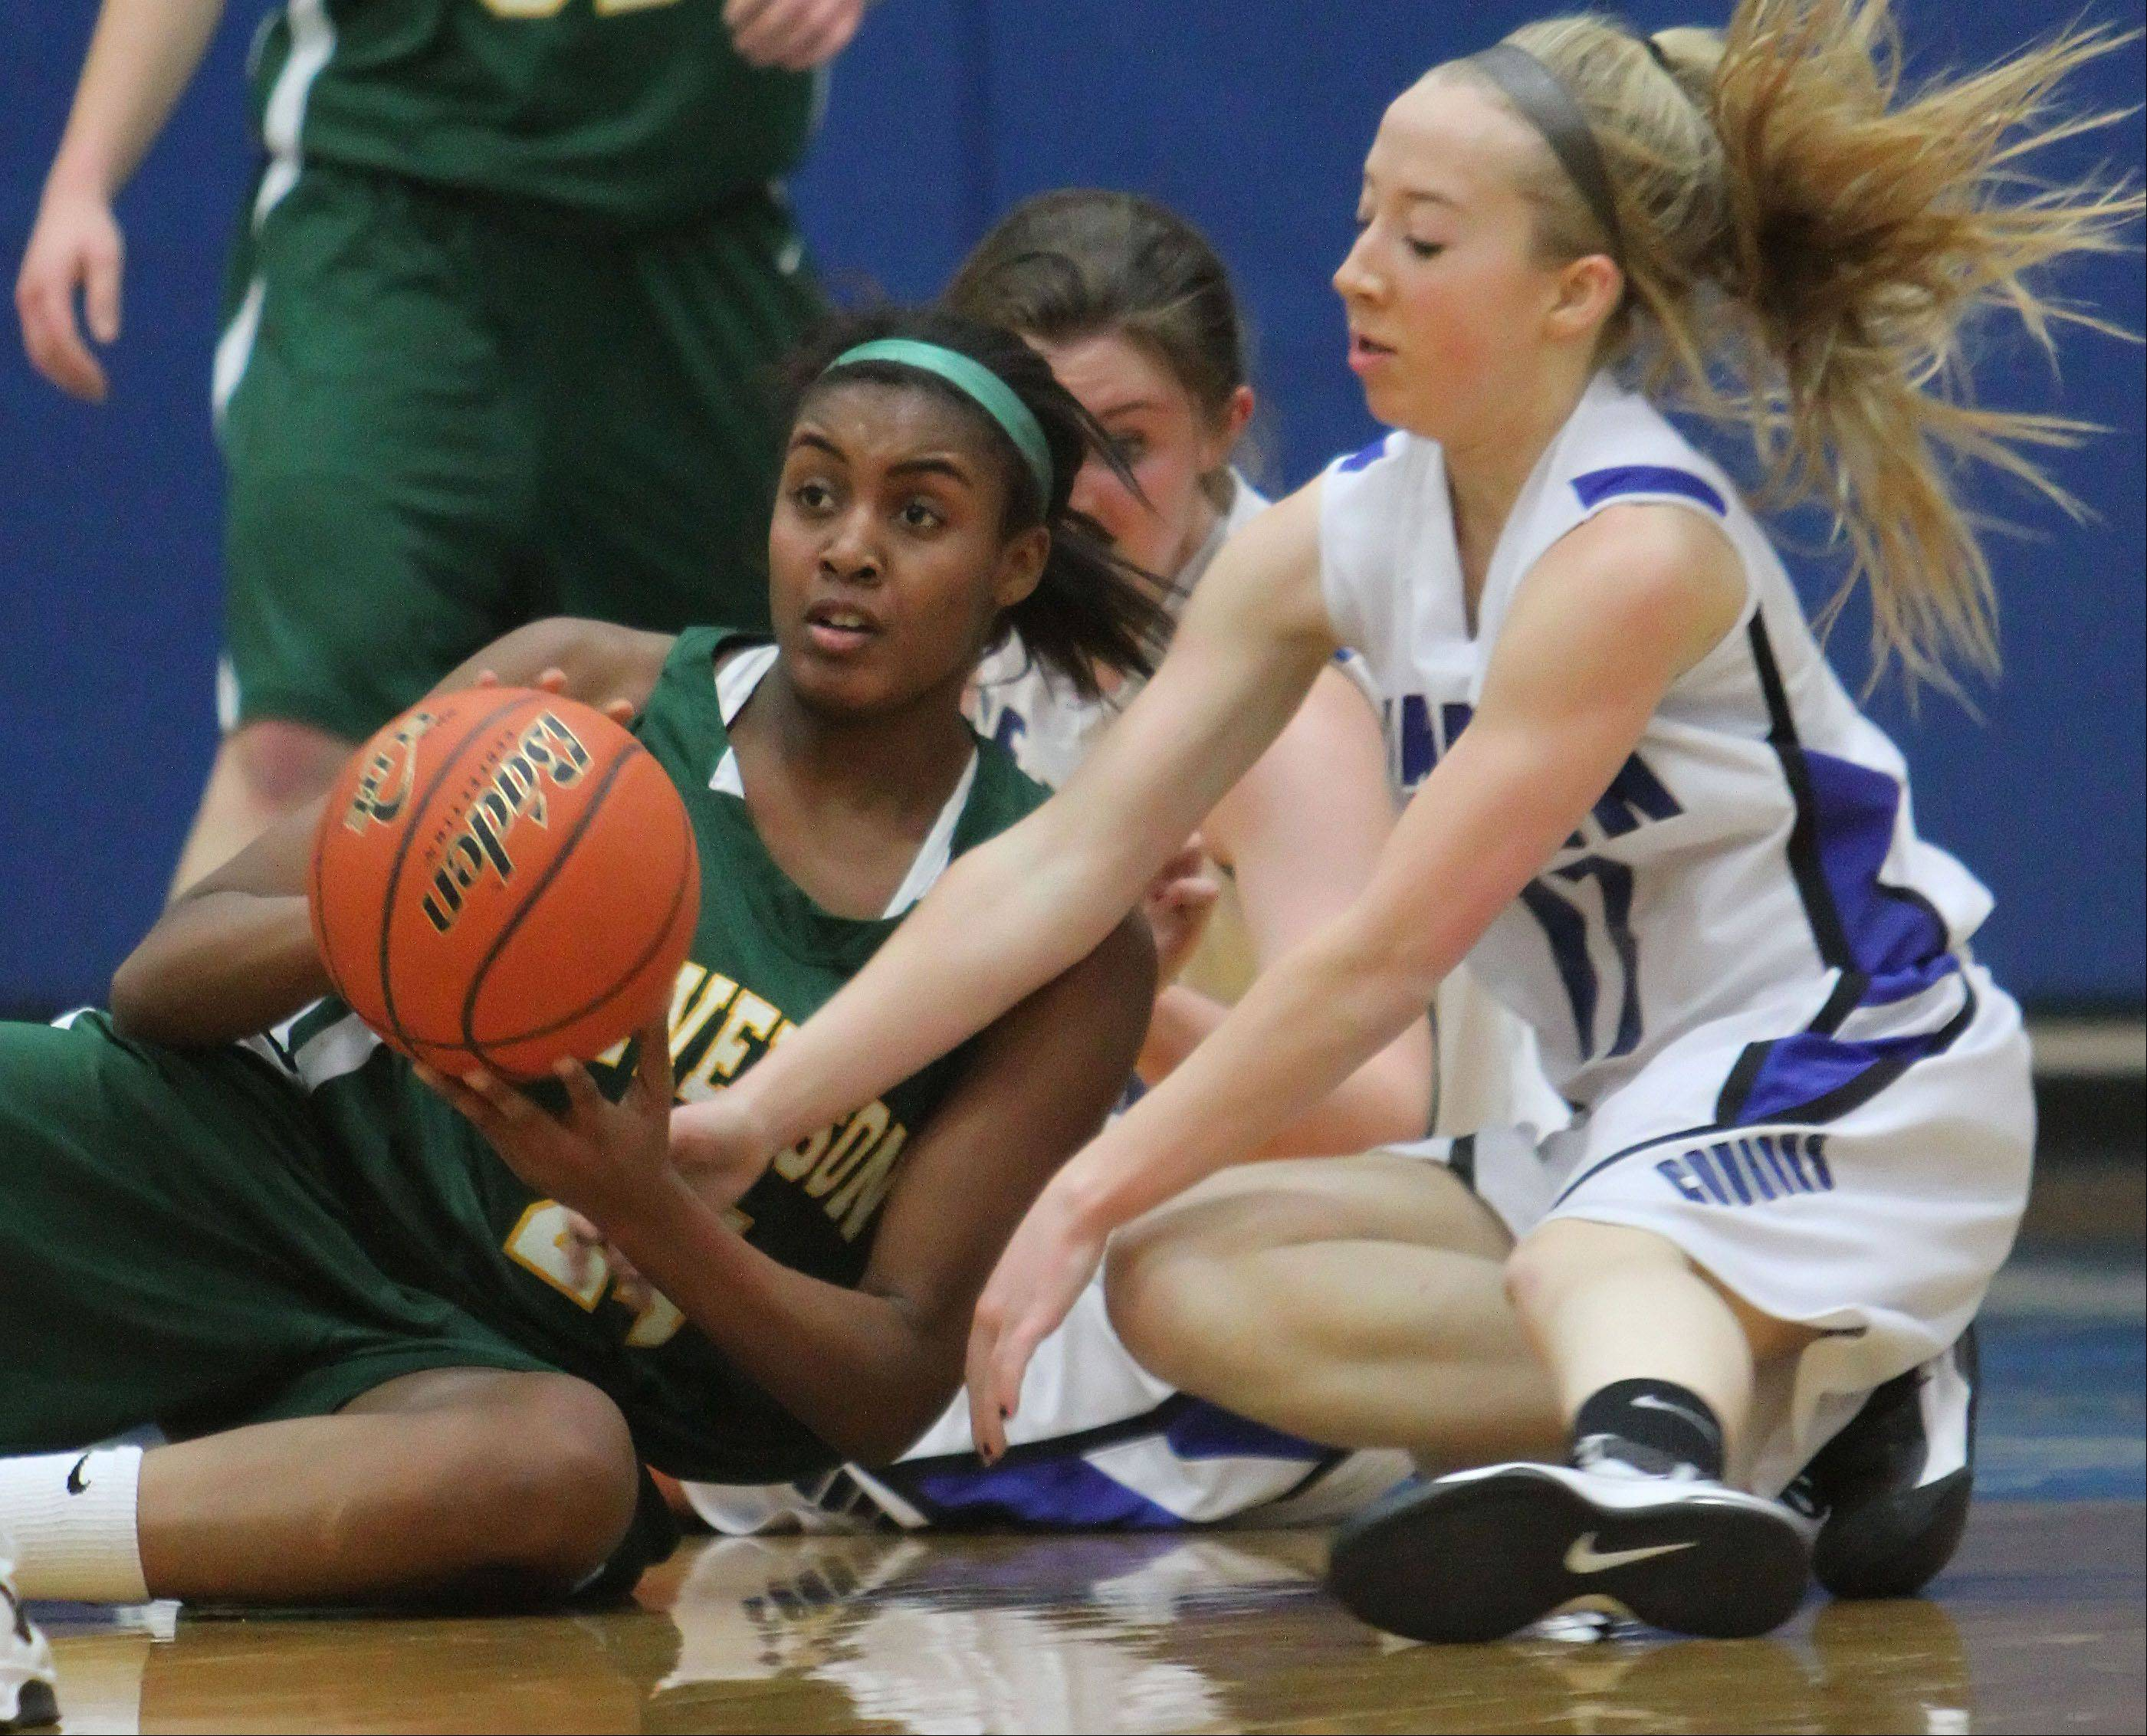 Images: Stevenson vs. Vernon Hills, girls basketball